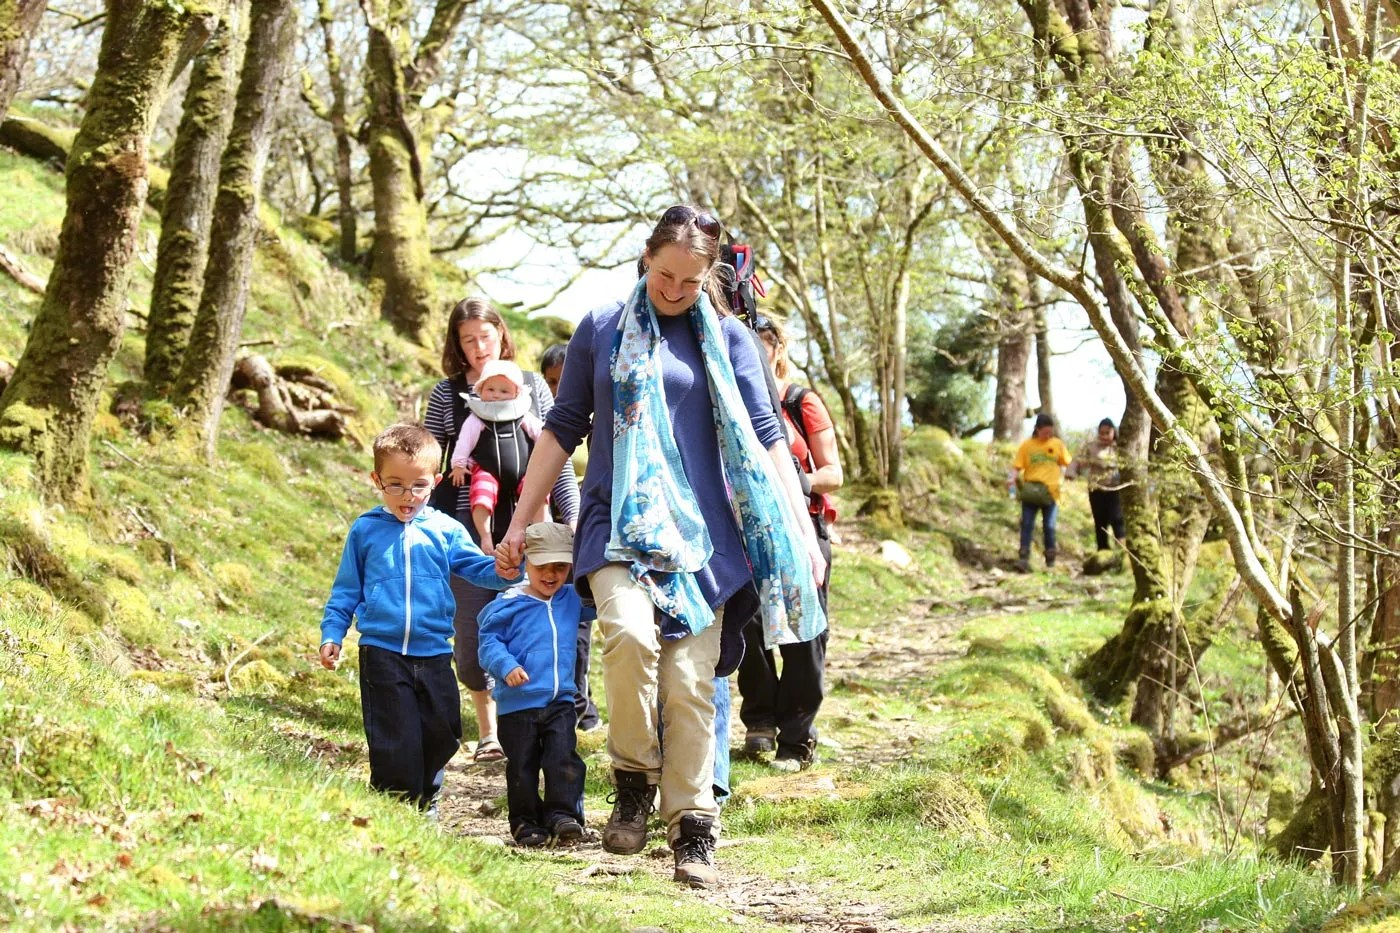 Woman with young children on a sponsored walk for Skanda Vale Hospice in Ty Canol woods, Pembrokeshire